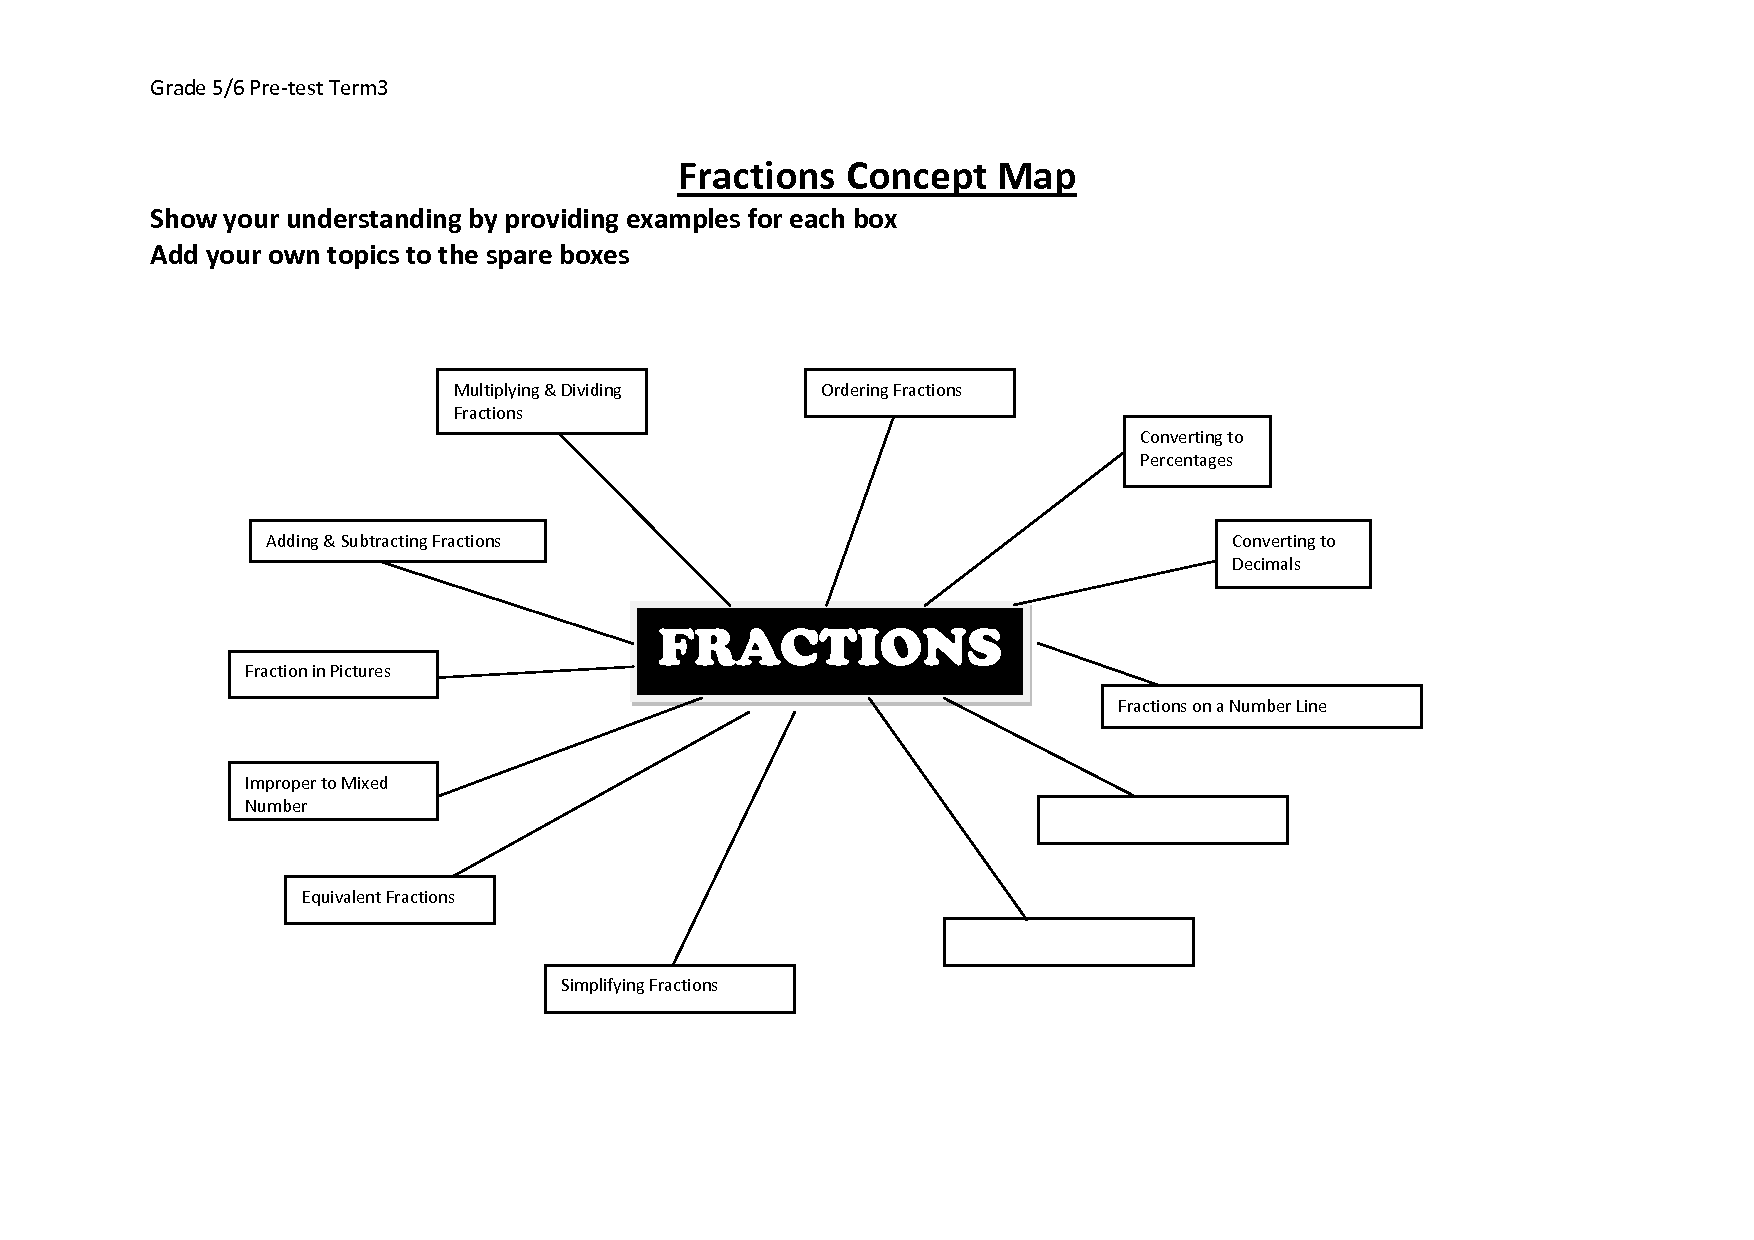 Concept map - Wikimedia Commons